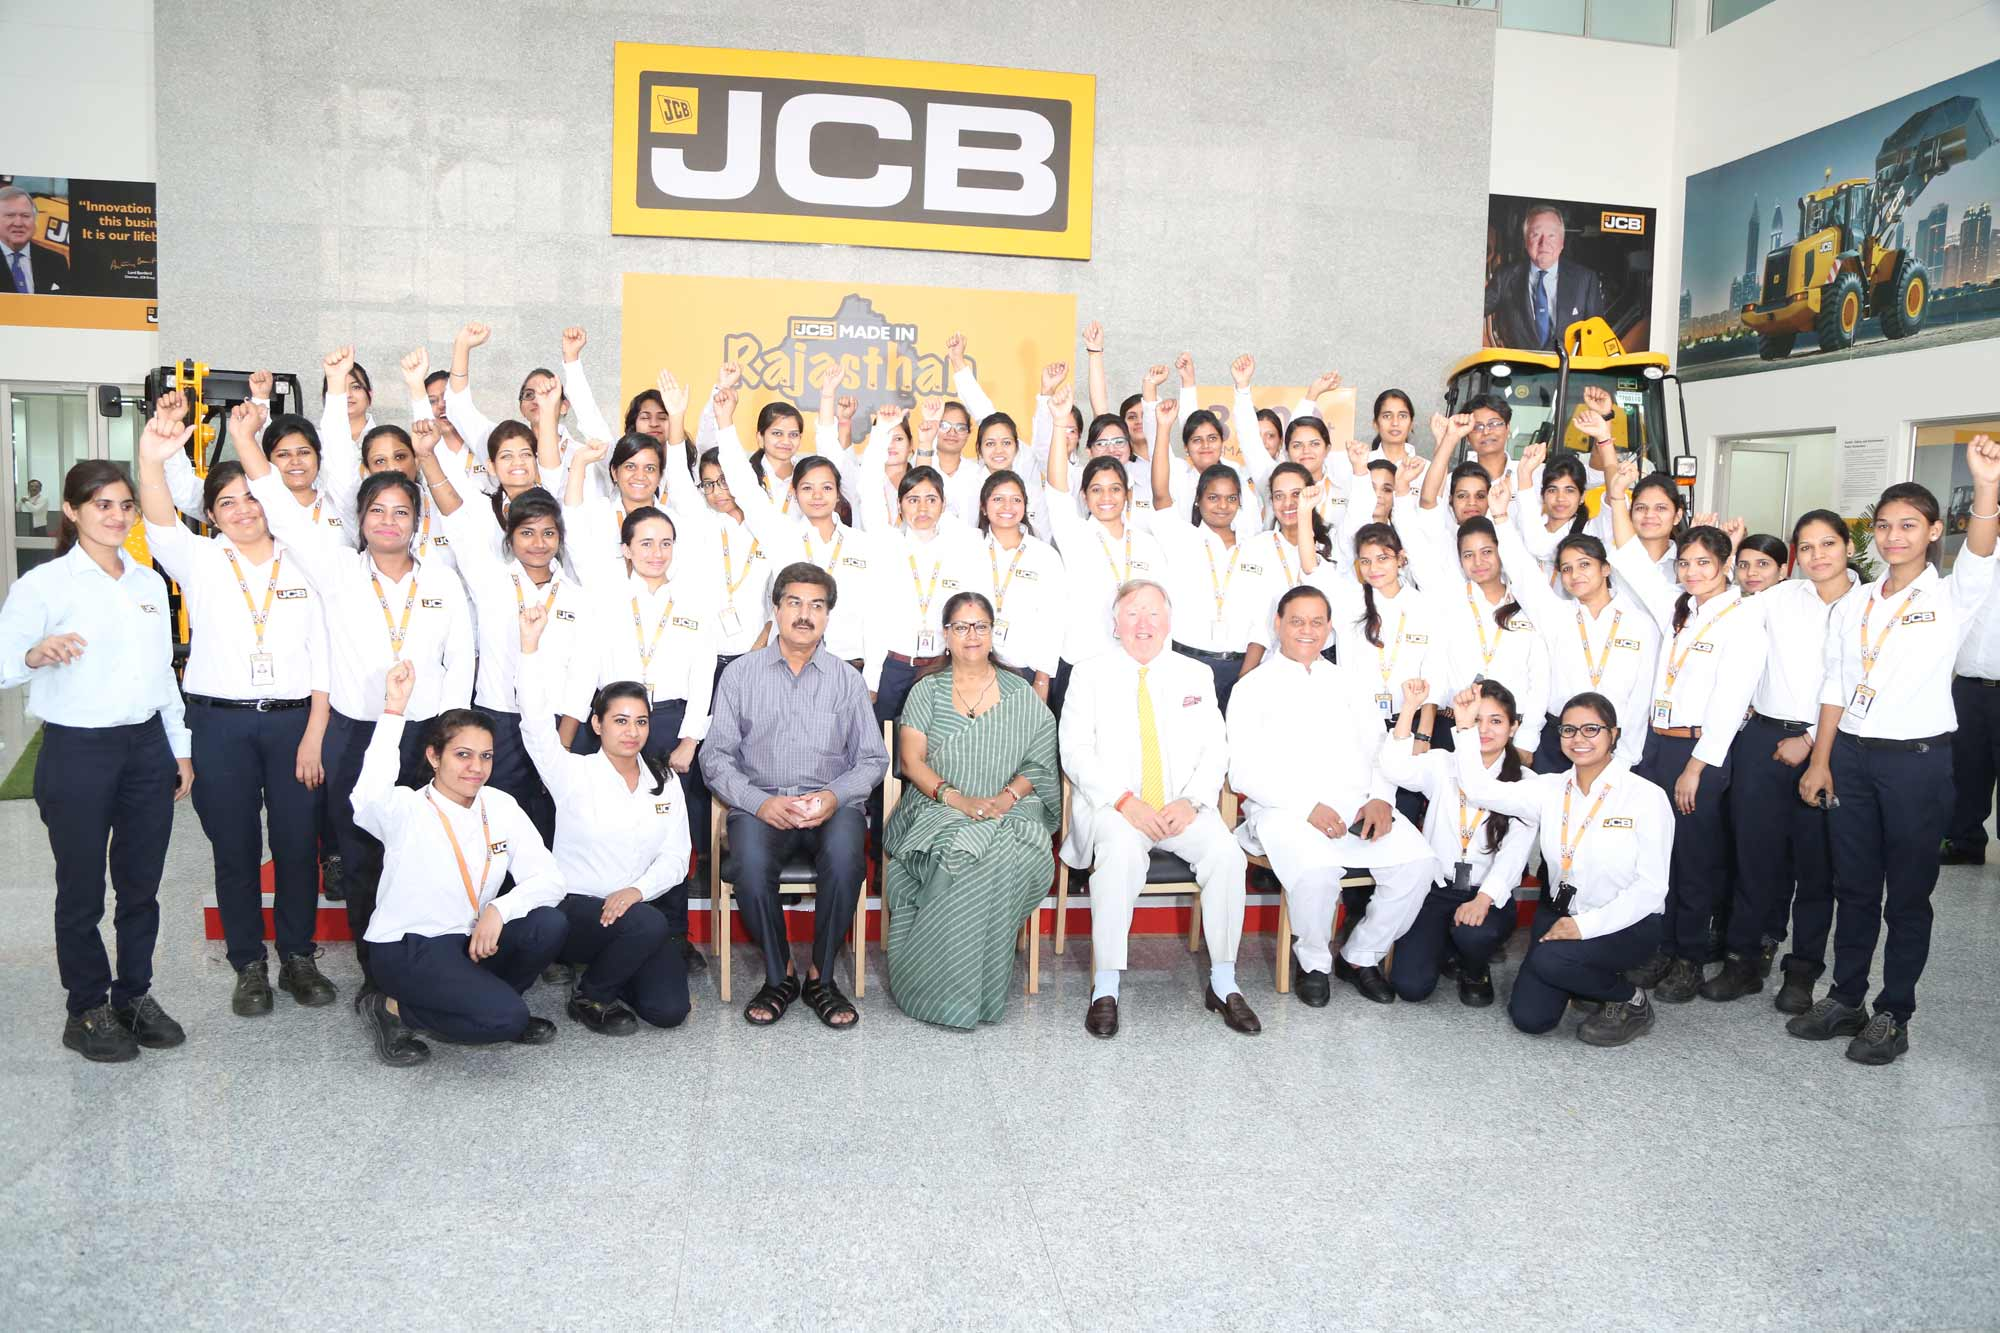 JCB rolls out its 3,000th machine from Jaipur facility